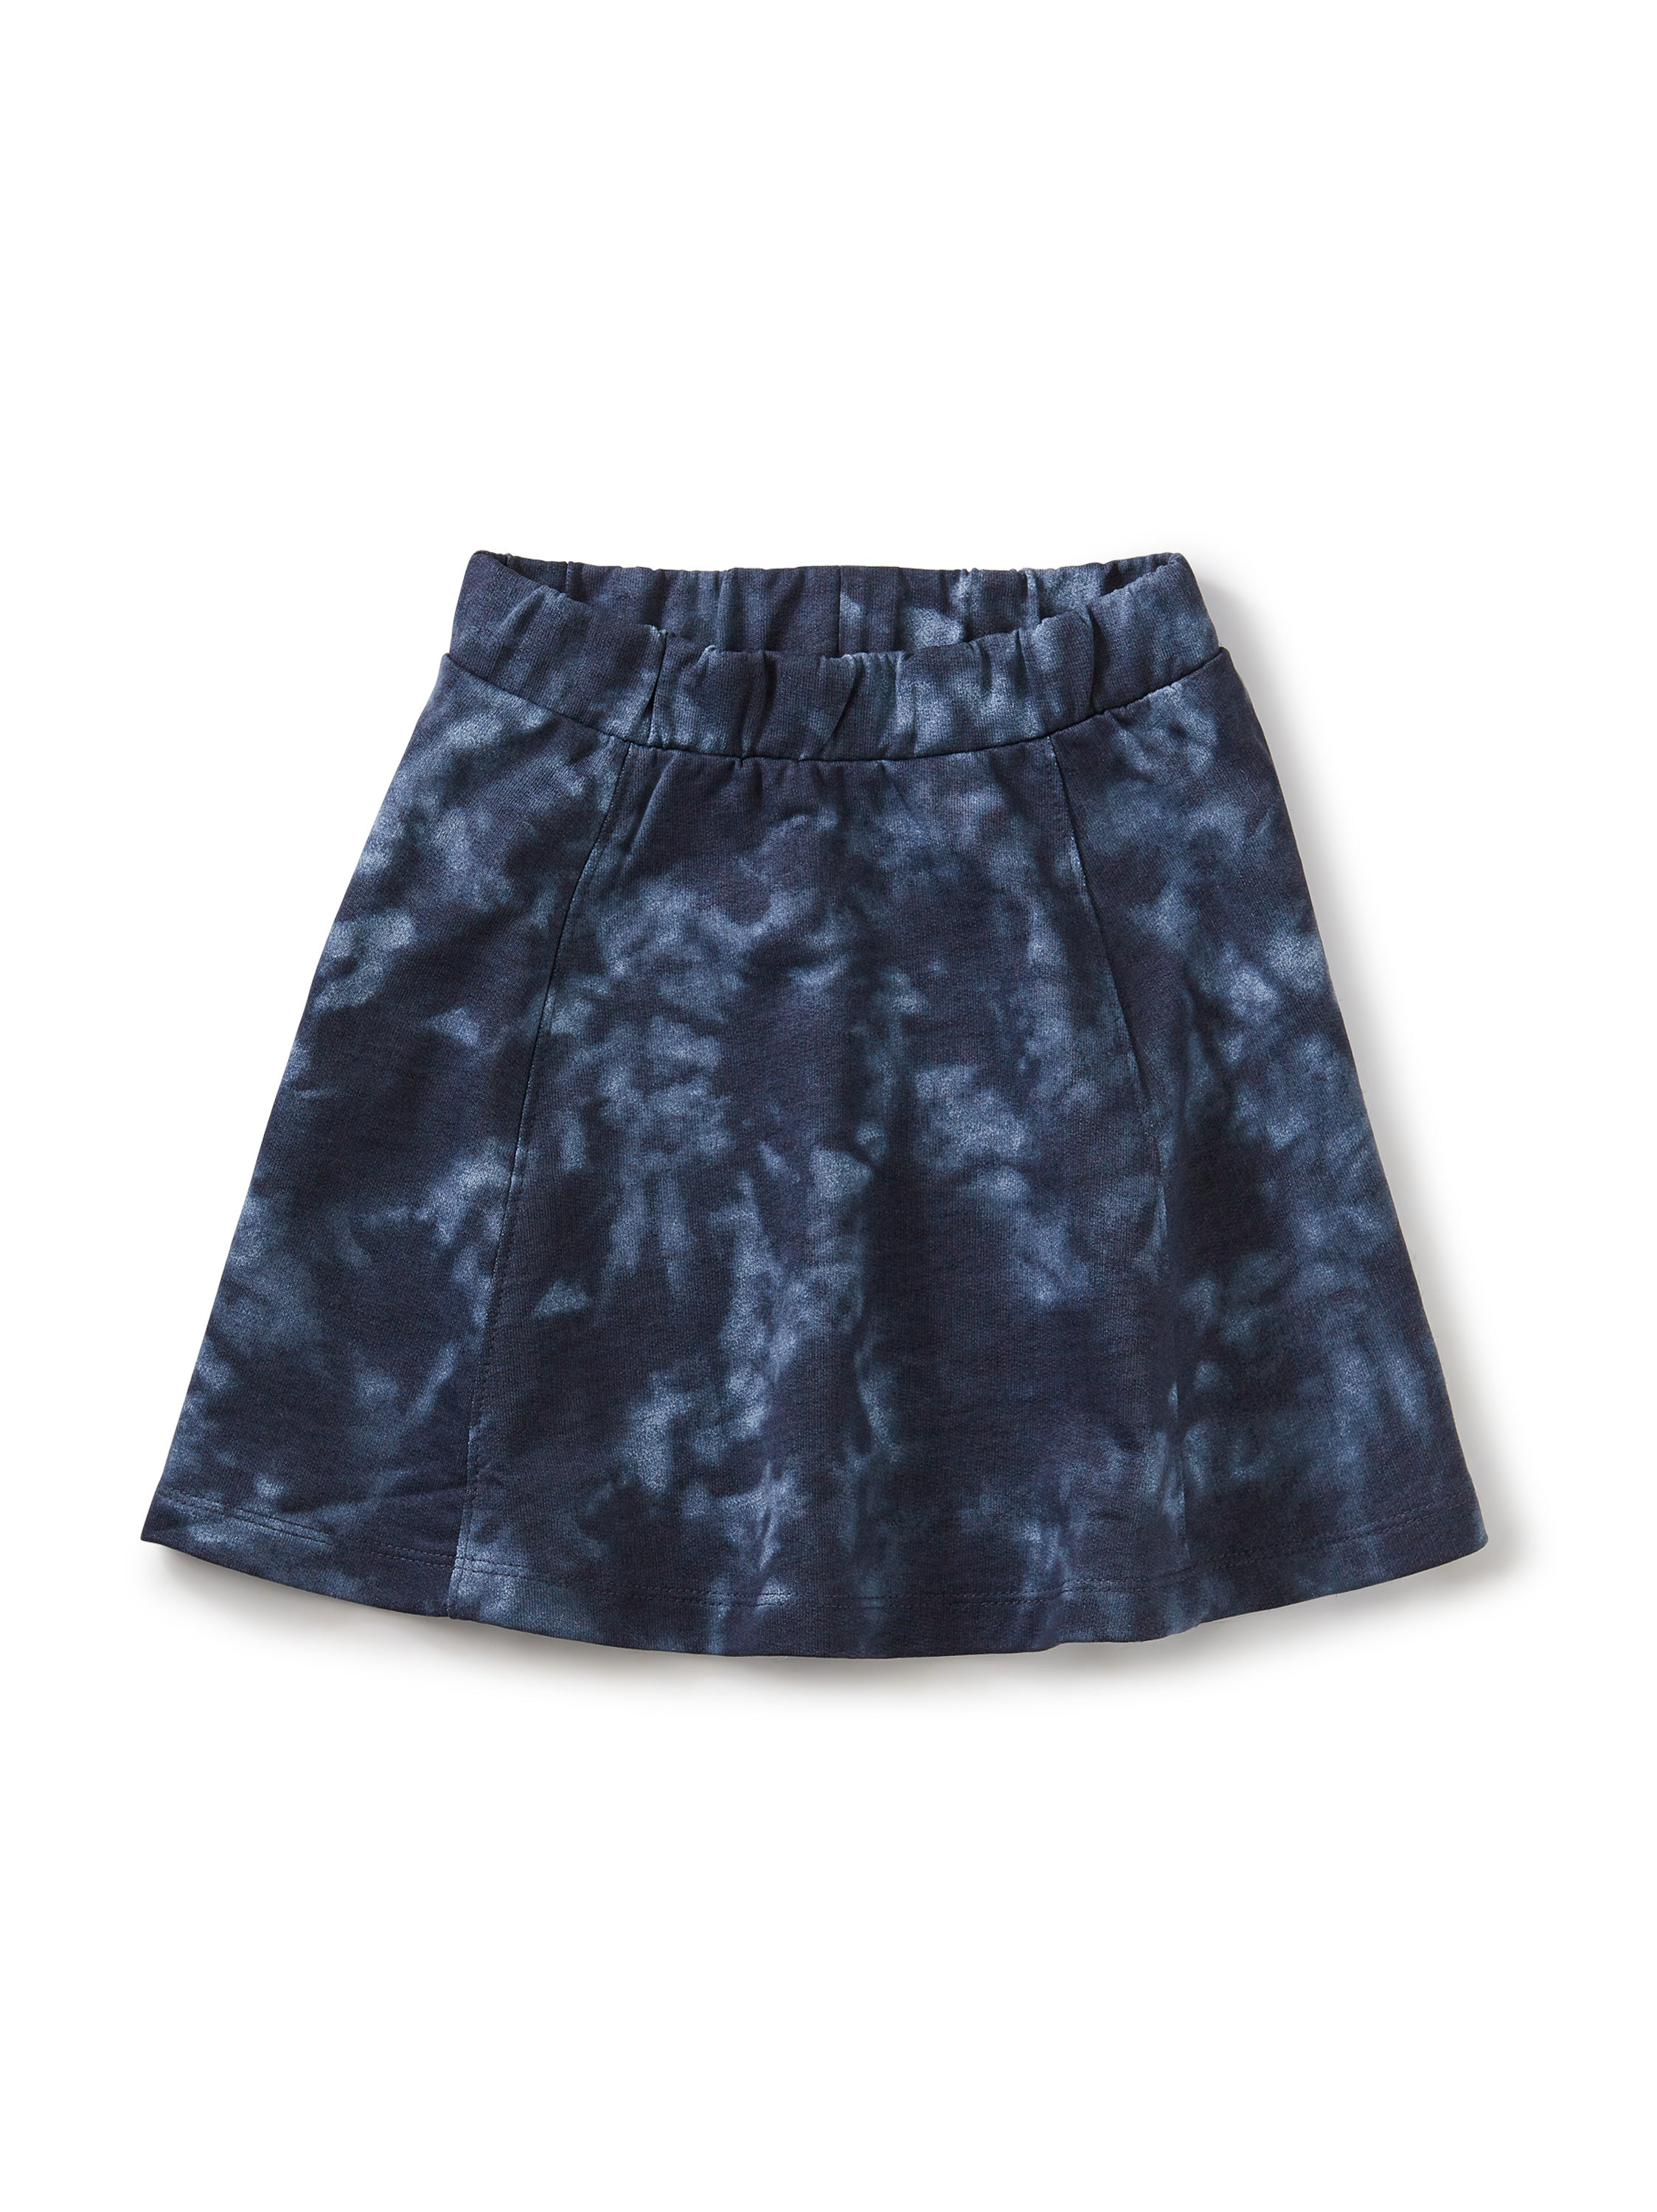 GIRLS BLUE TWIRL SKIRT